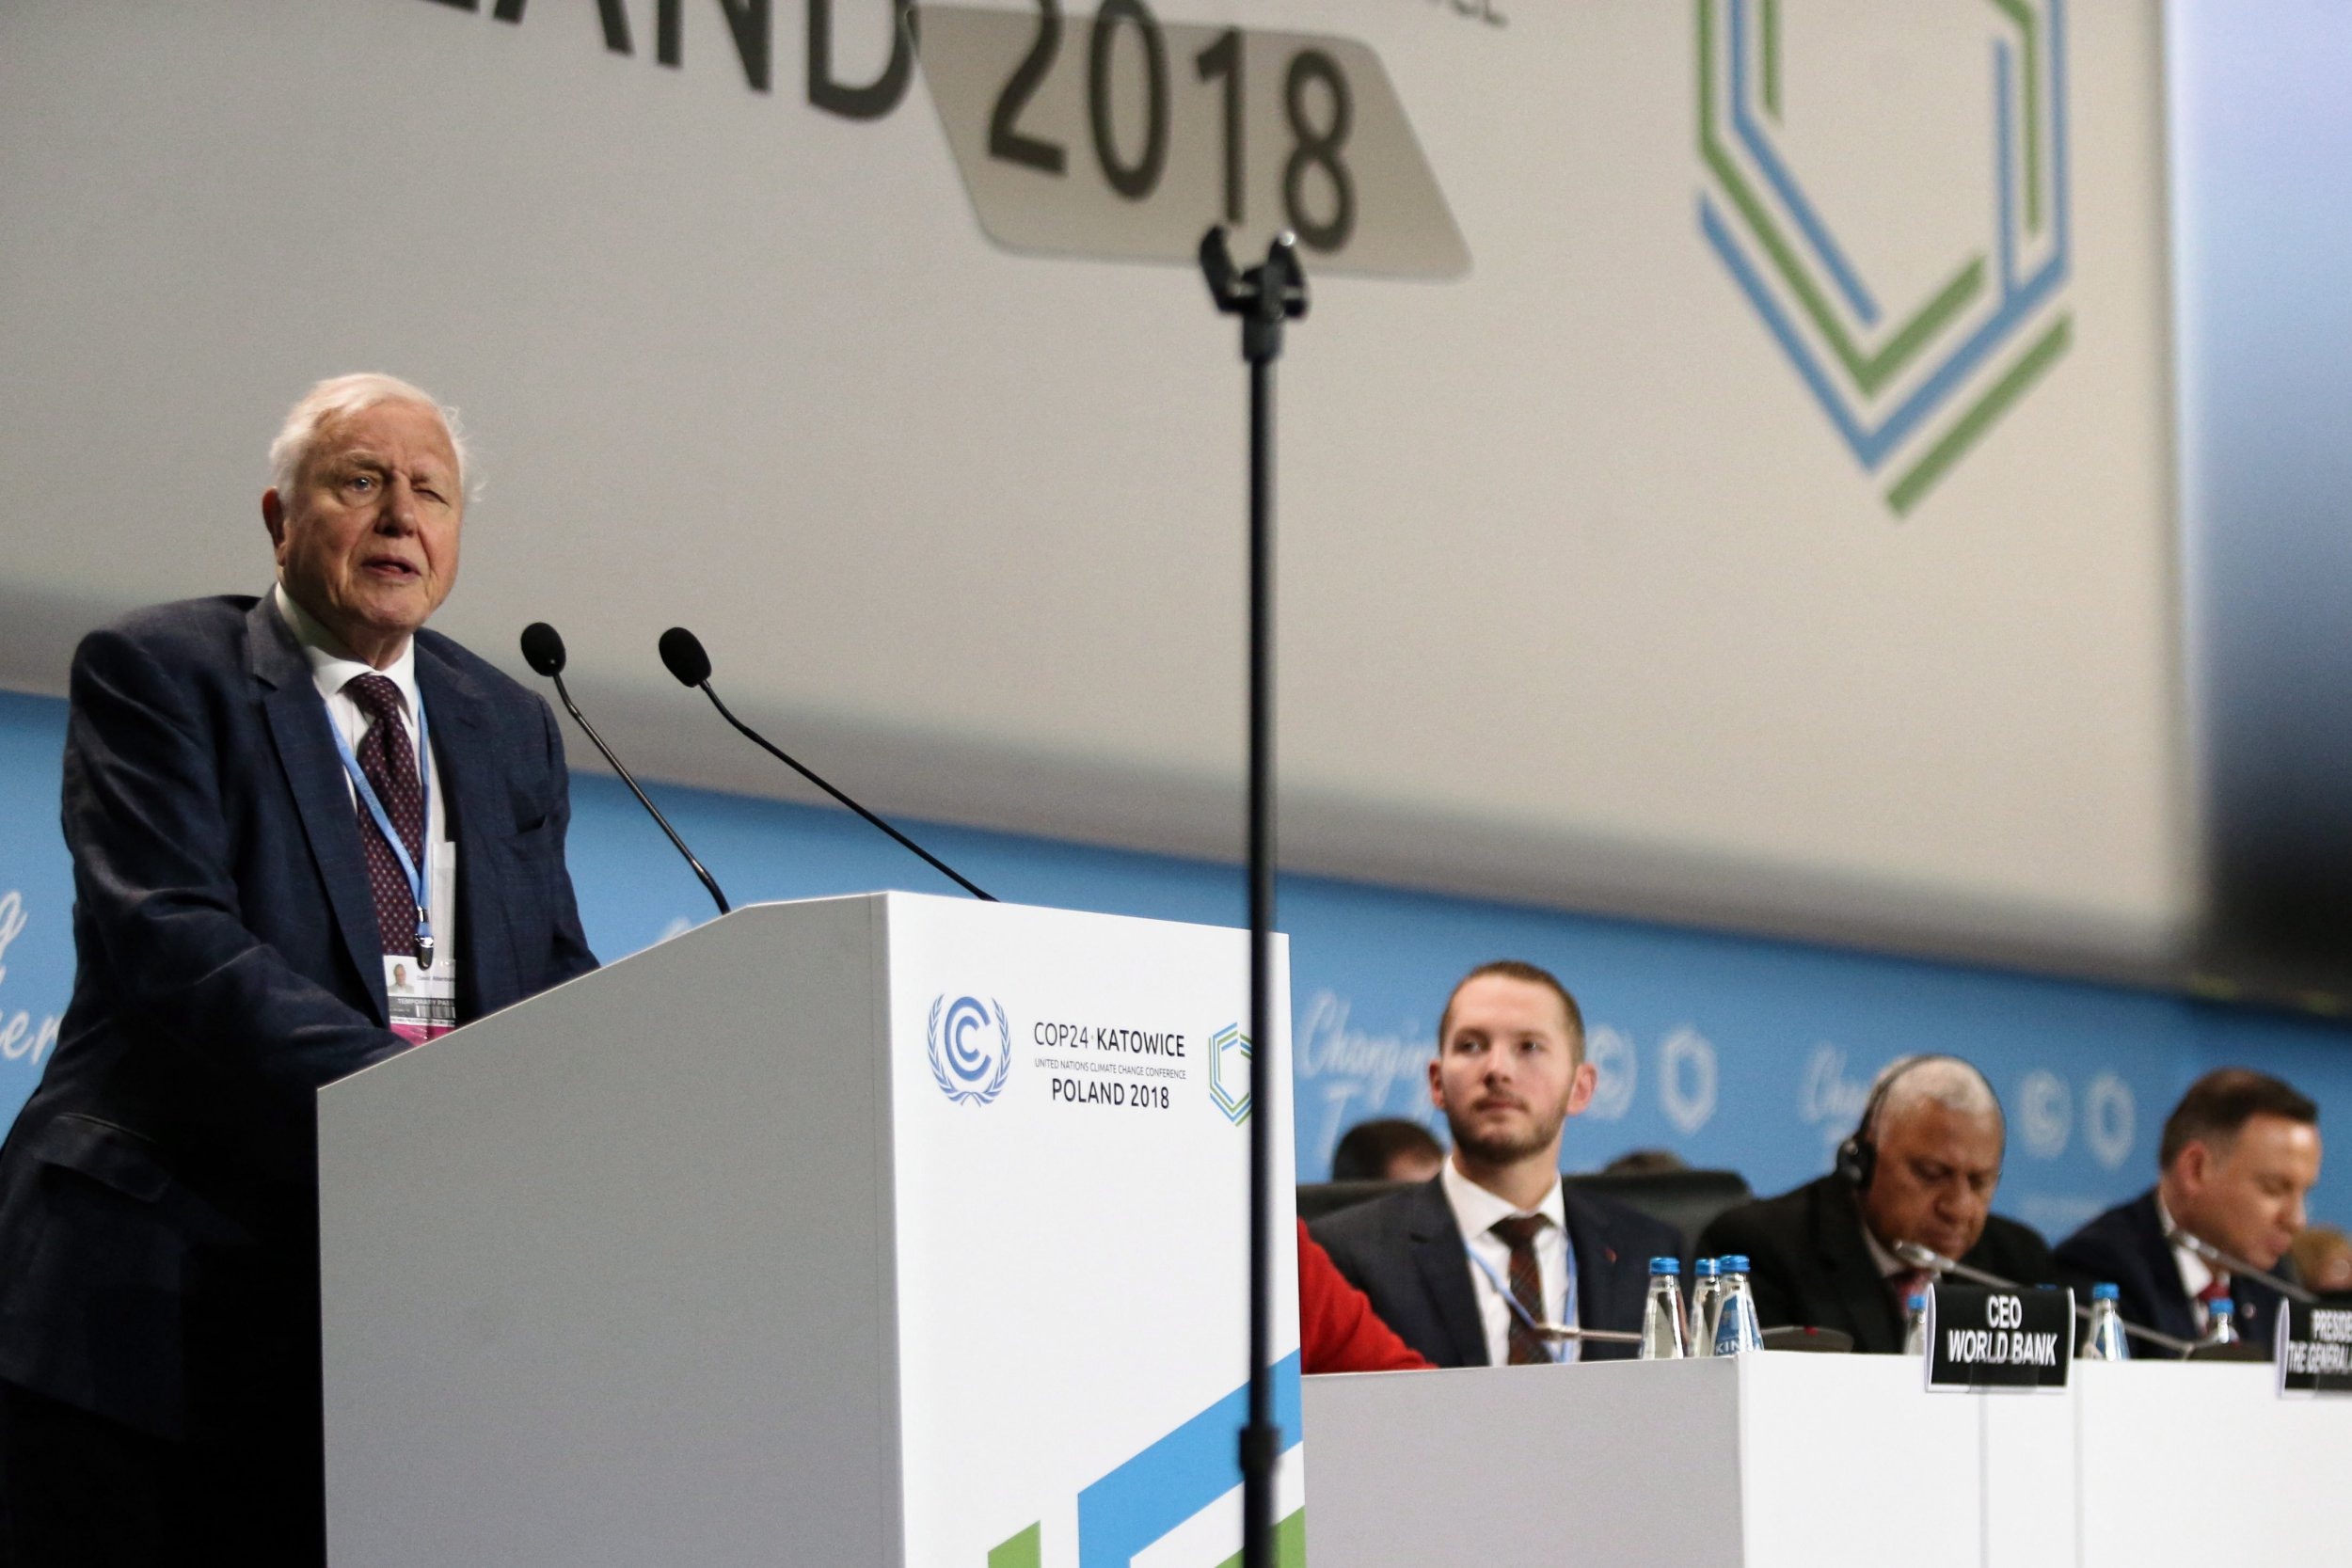 epa07205712 British naturalist and TV personality David Attenborough delivers a speech during the opening ceremony of the COP24 summit in Katowice, Poland, 03 December 2018. The COP (Conference of the Parties) summit is the highest body of the UN Framework Convention on Climate Change (UNFCC). Expected at the meeting are close to 30,000 delegates from all over the world, including government leaders and ministers responsible for environmental policy. EPA/ANDRZEJ GRYGIEL POLAND OUT